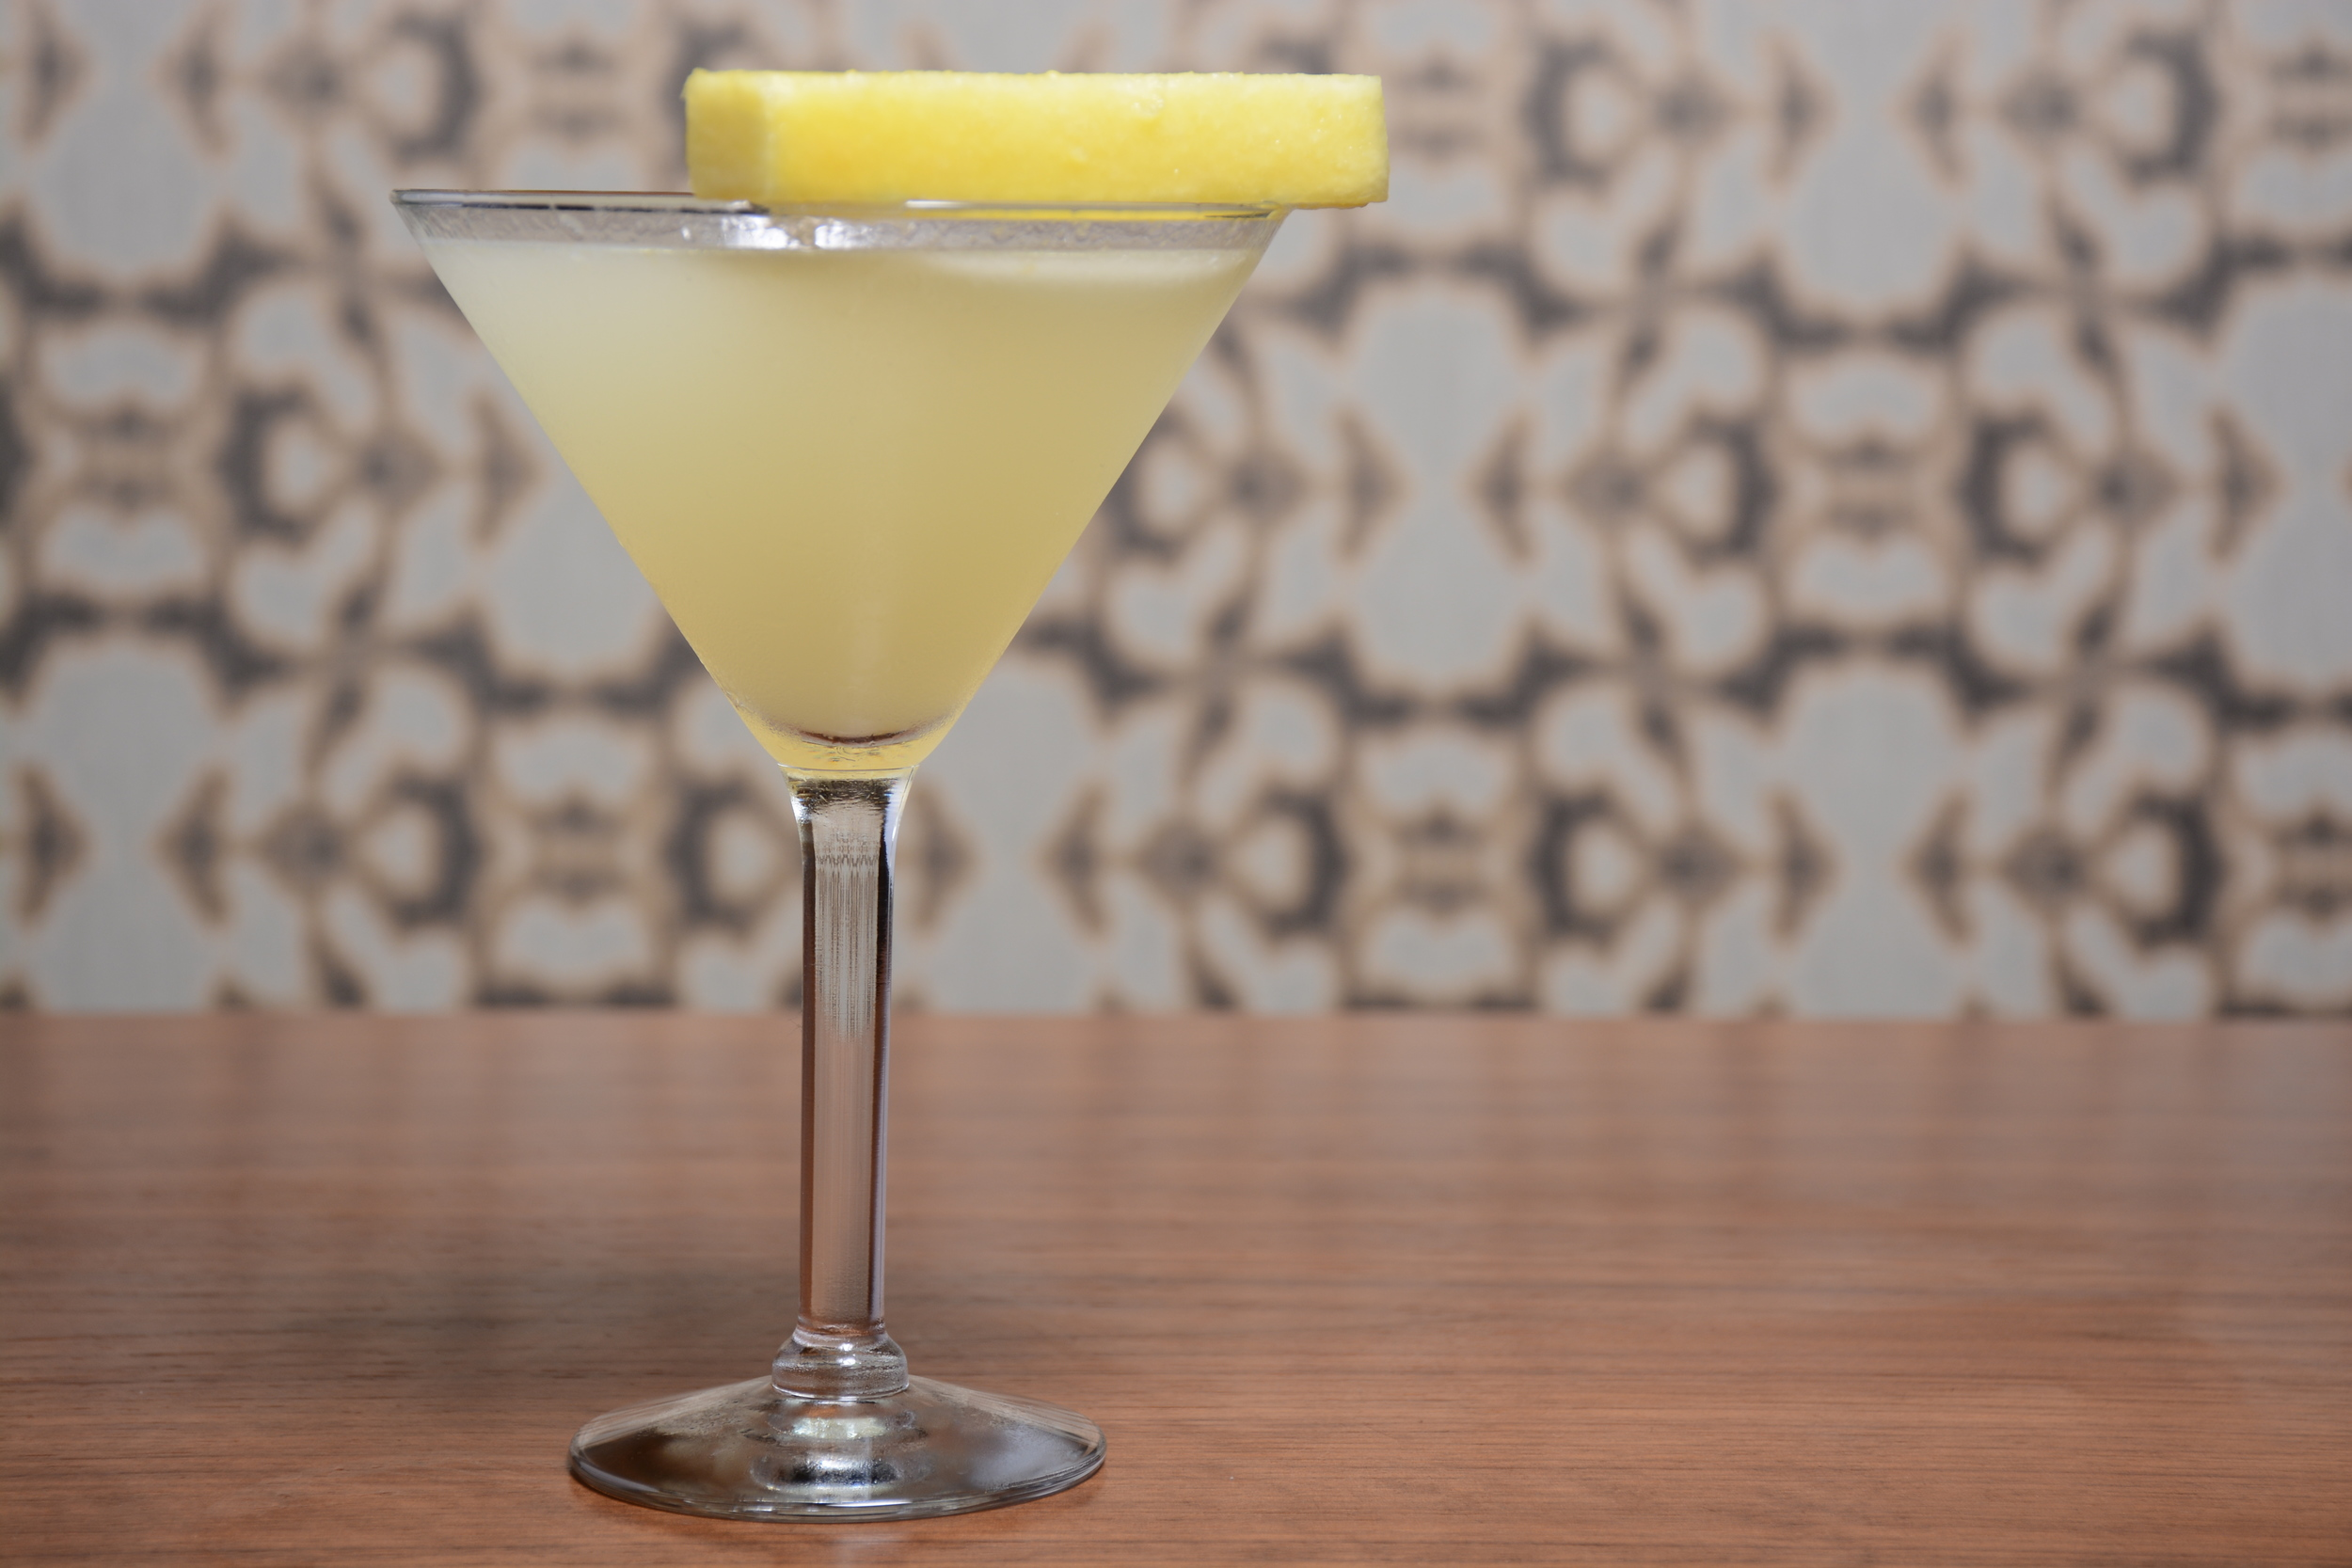 SOL Cocina - Pineapple & Vanilla Infused Martini 2.jpg